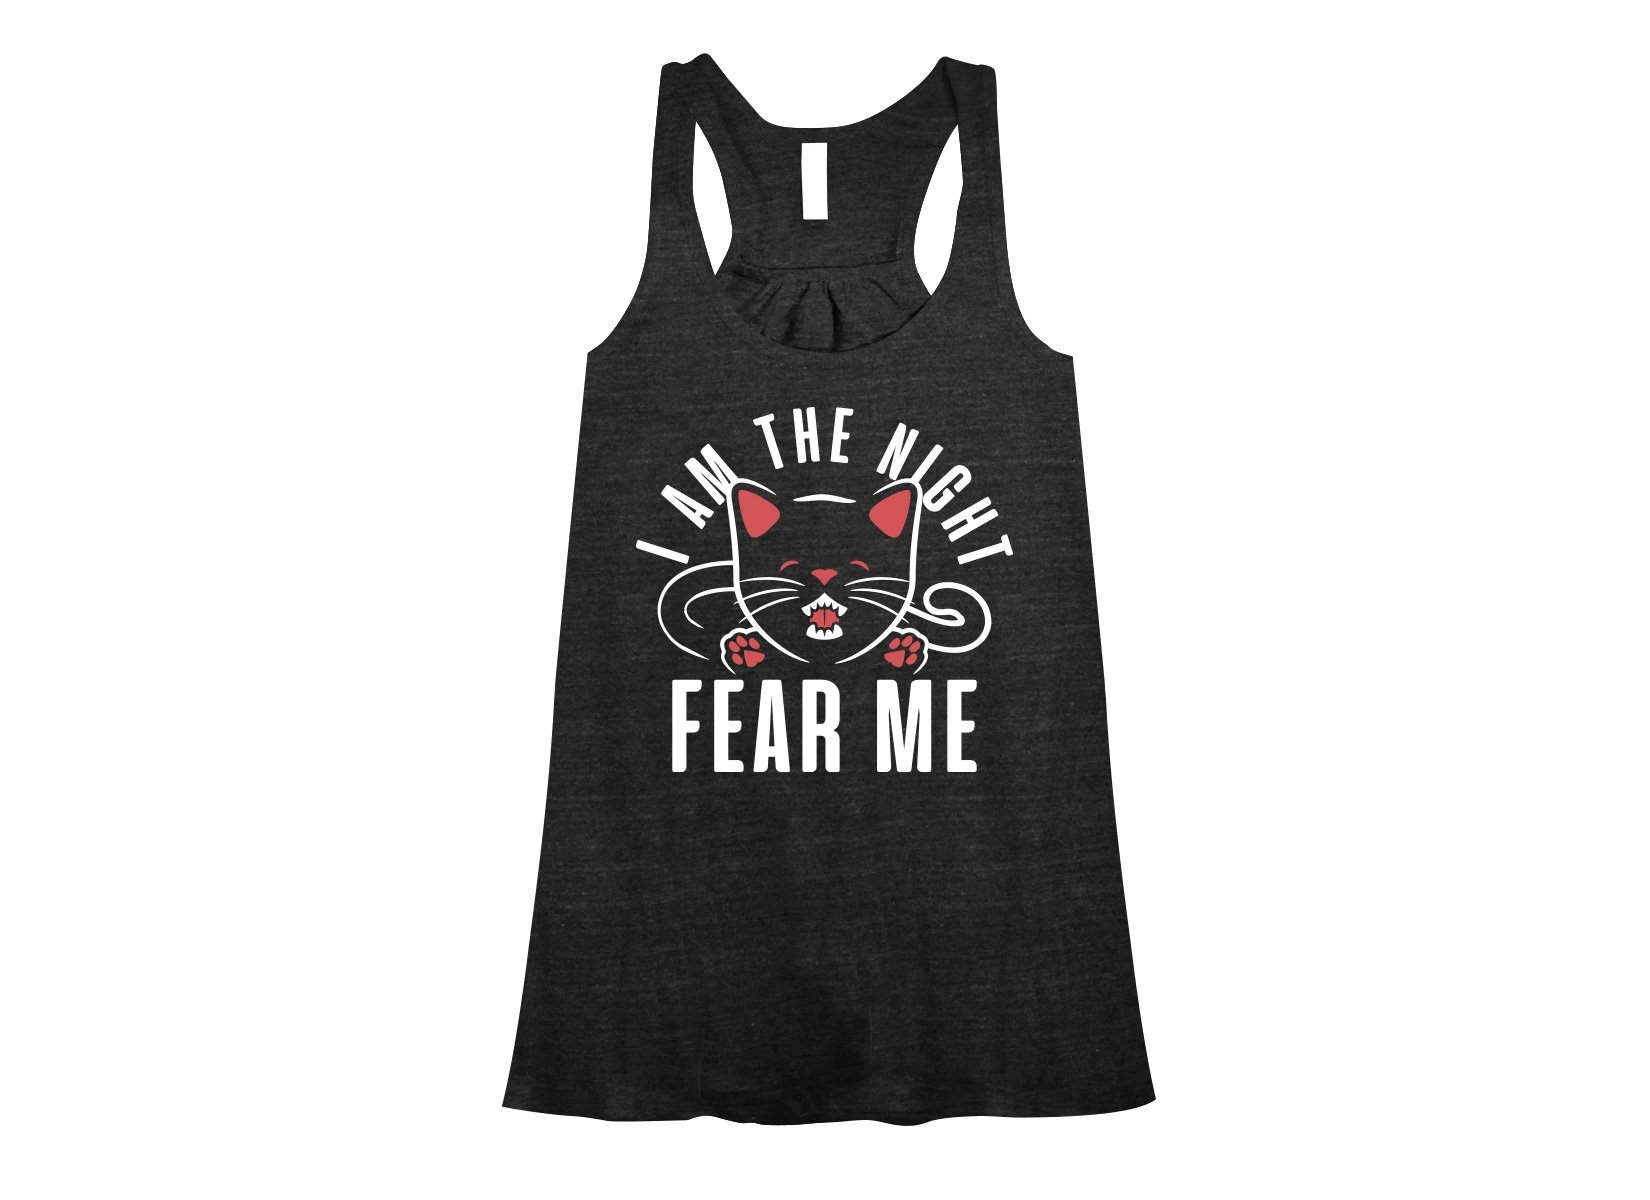 I Am The Night Fear Me on Womens Tanks T-Shirt